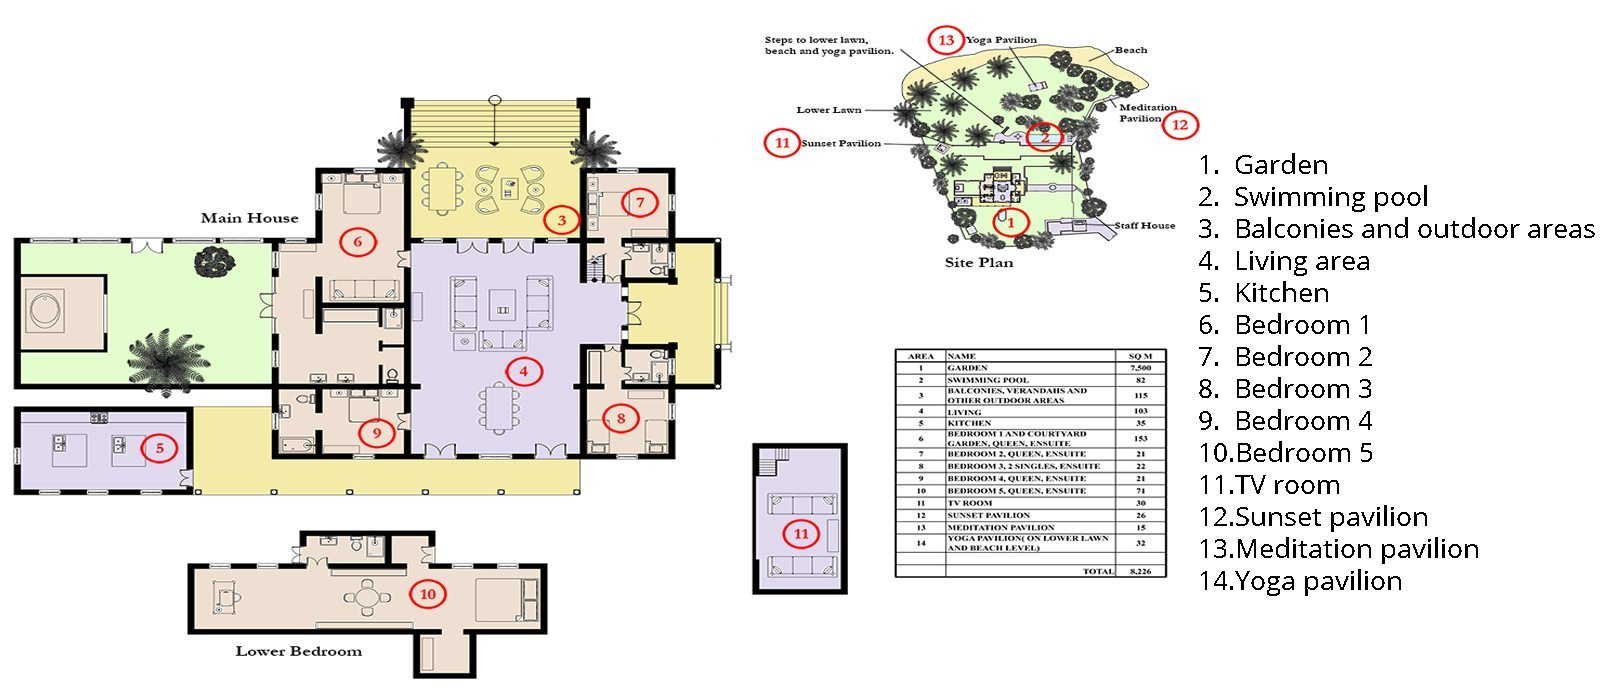 Pointe Sud Floorplan | Mirissa, Sri Lanka